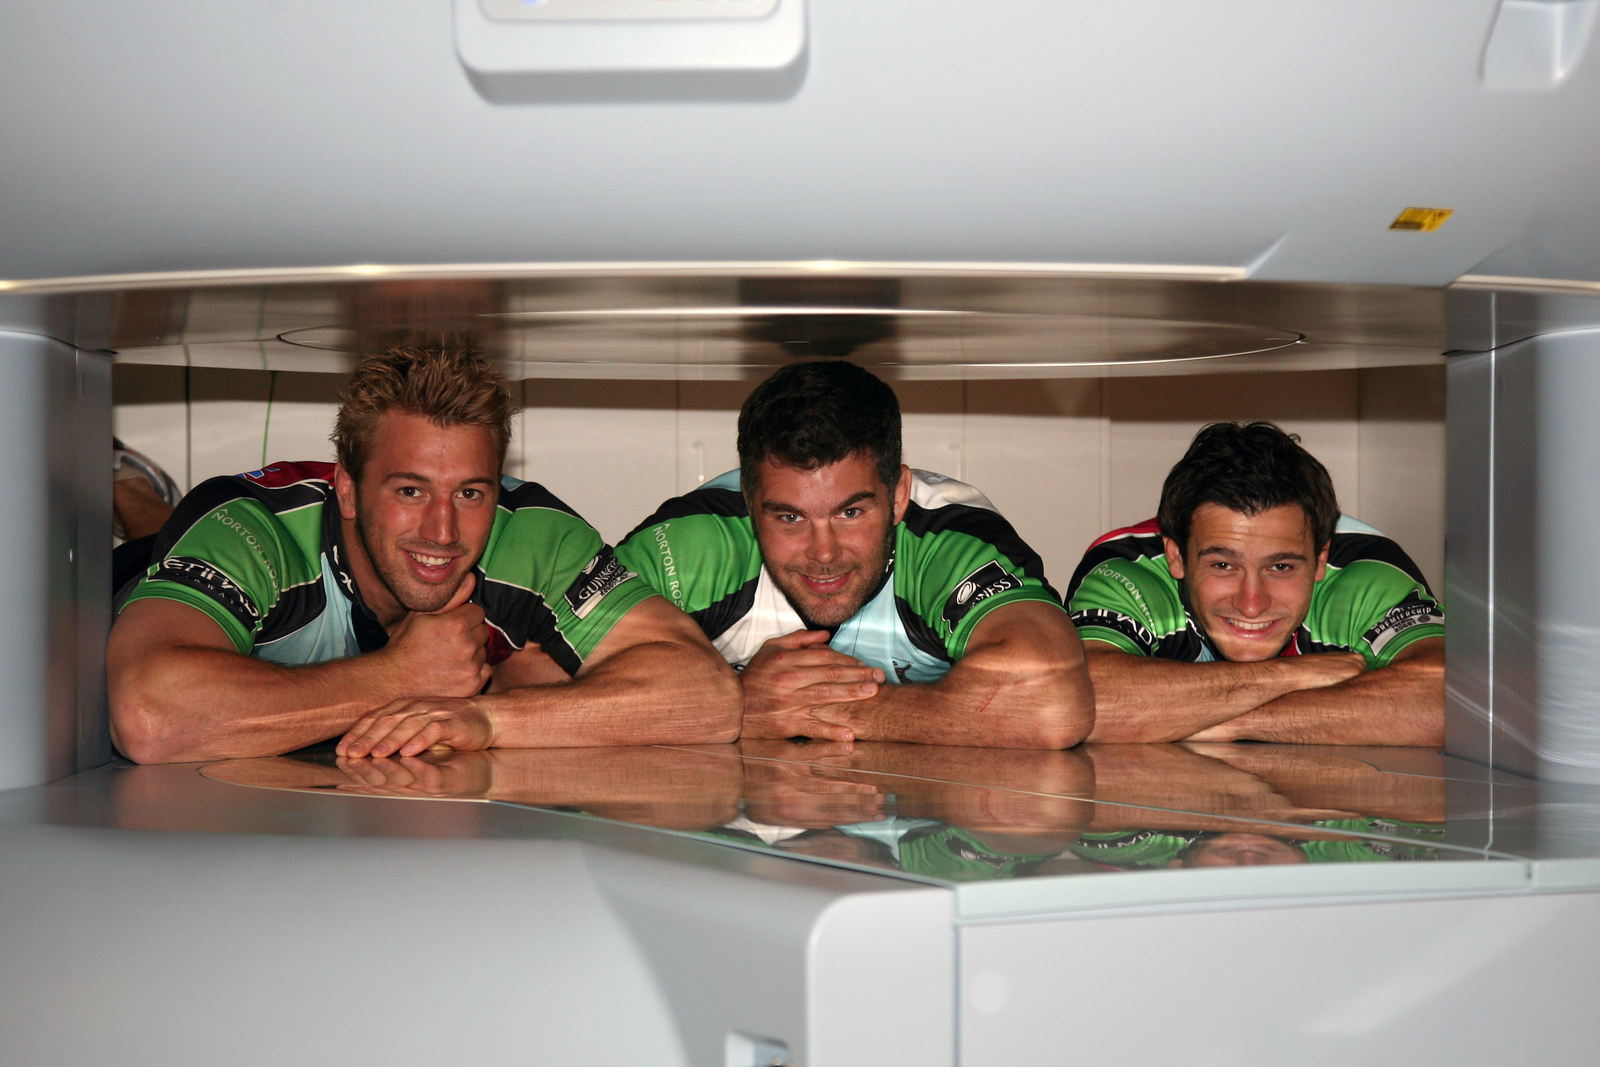 Chris Robshaw, Nick Easter and Danny Care